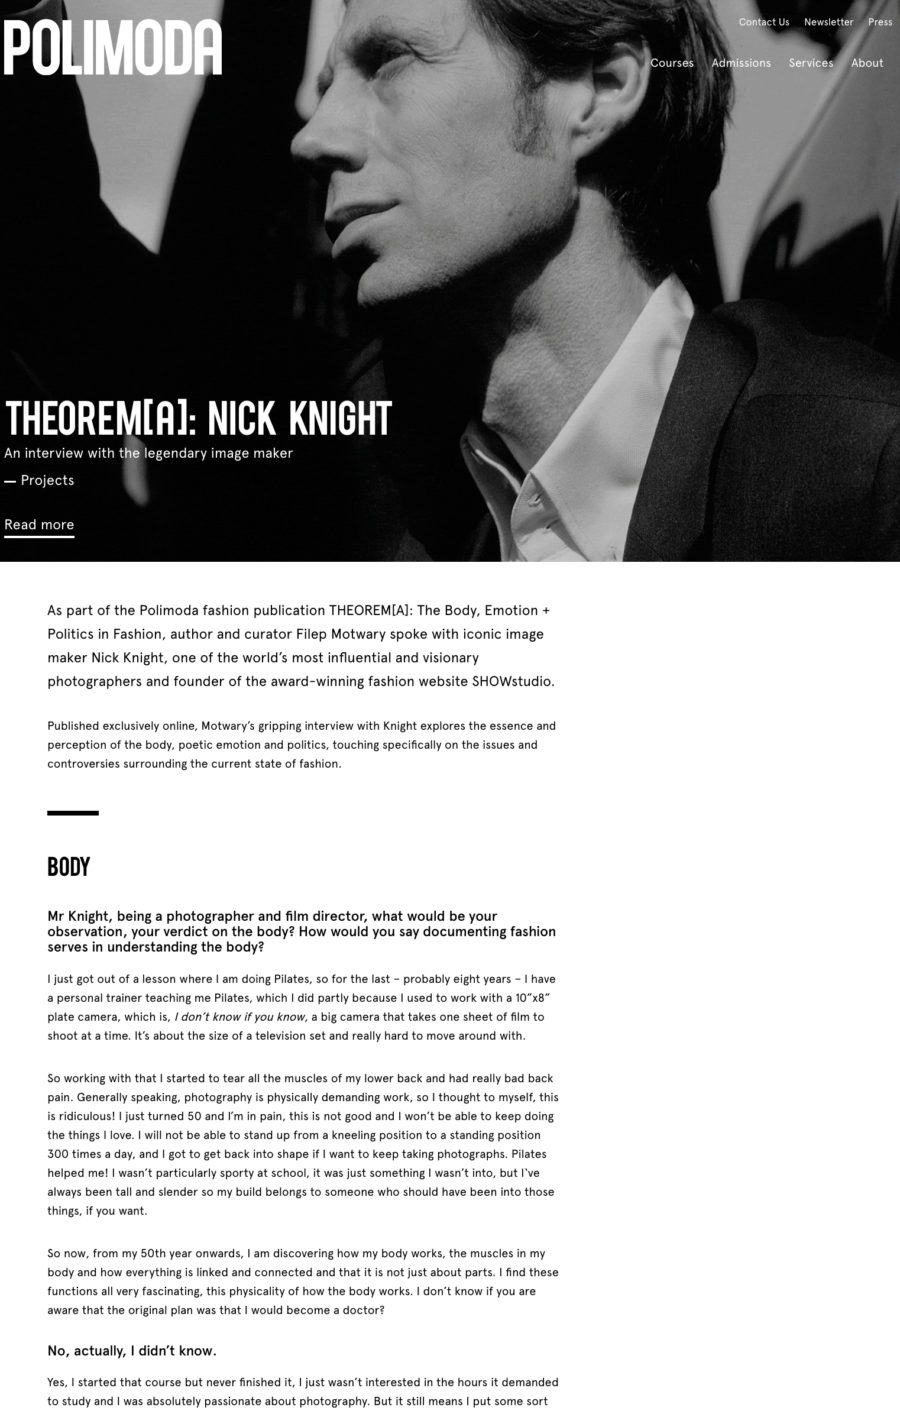 FILEP MOTWARY NICK KNIGHT THEOREMA INTERVIEW POLIMODA 2018